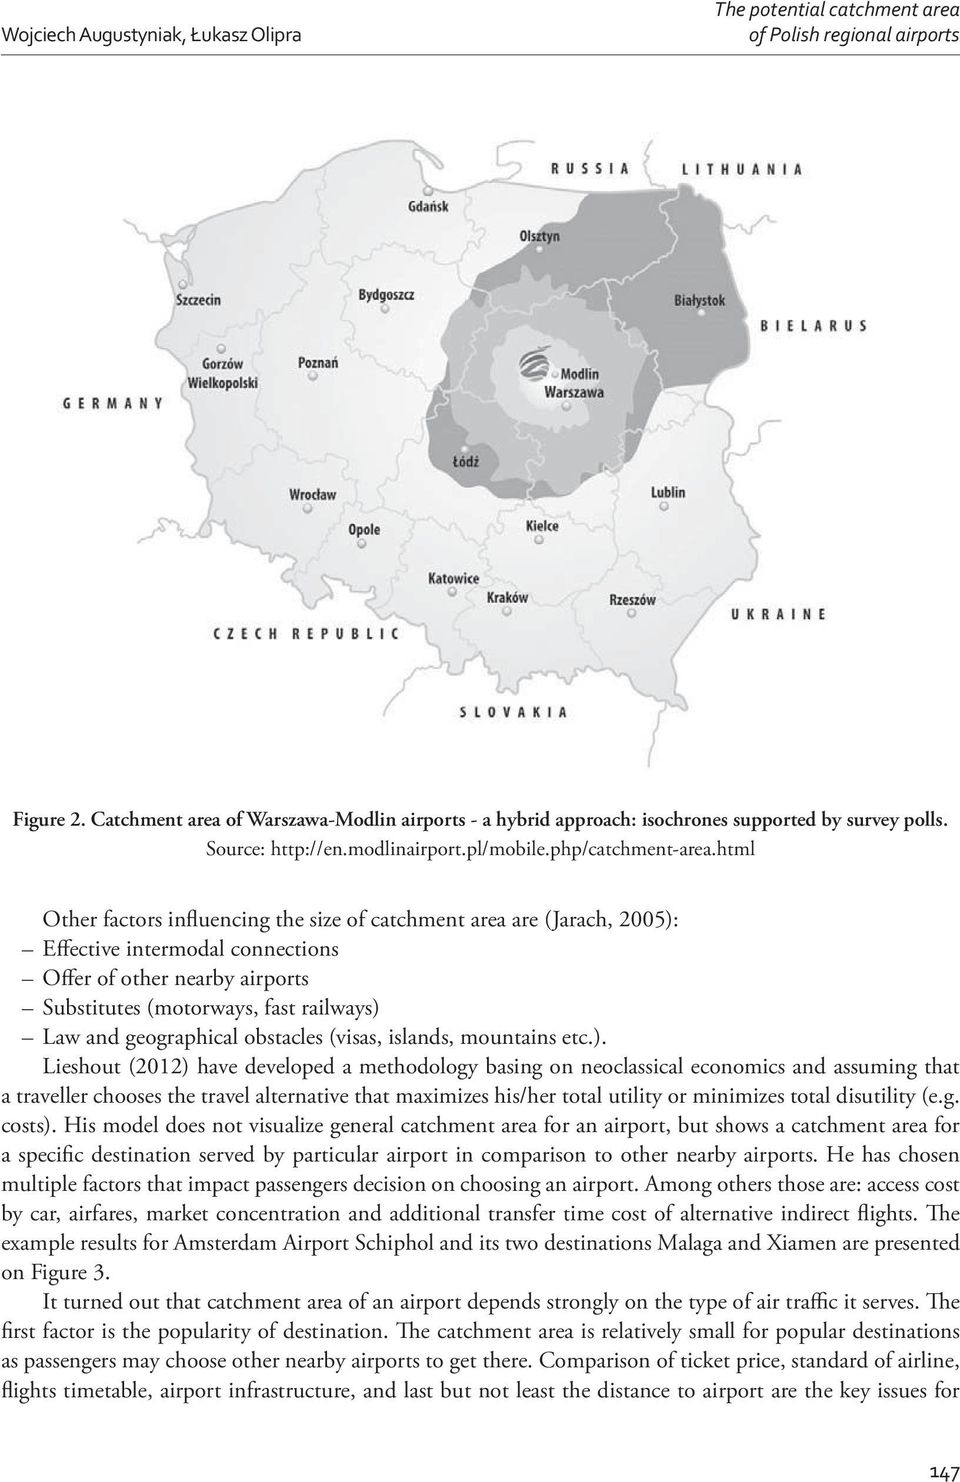 html Other factors influencing the size of catchment area are (Jarach, 2005): Effective intermodal connections Offer of other nearby airports Substitutes (motorways, fast railways) Law and